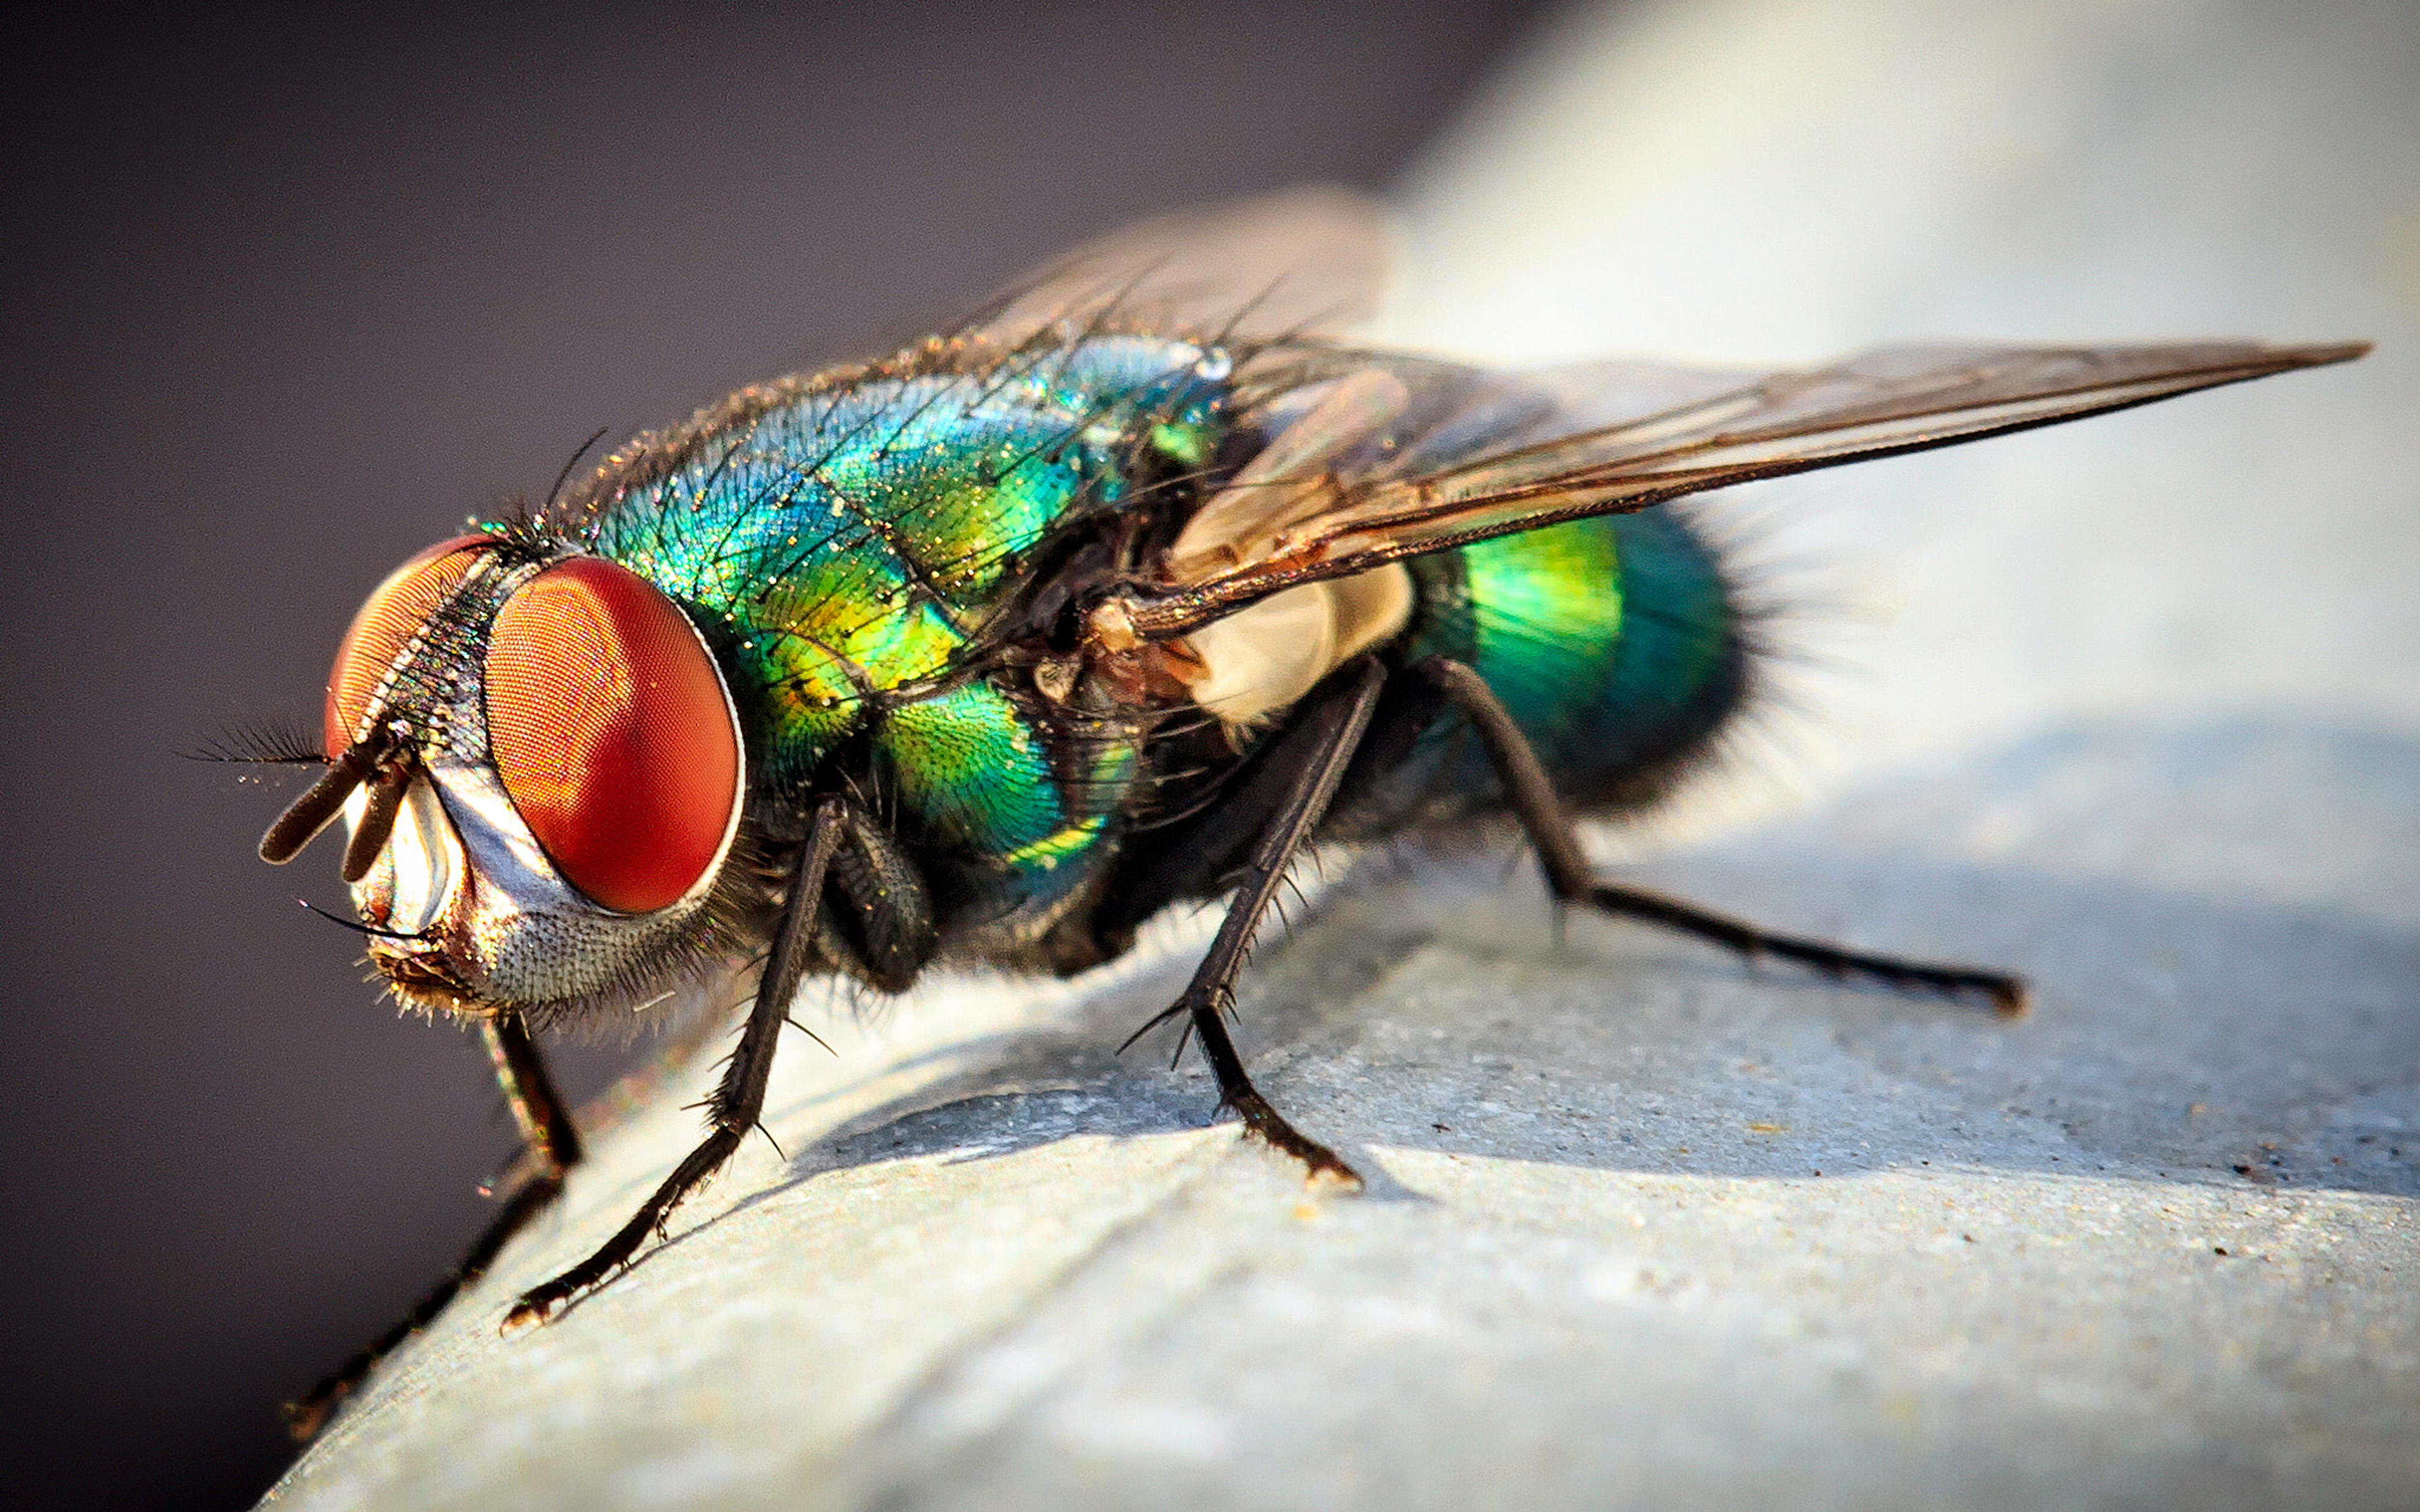 Insect Common Green Bottle Fly Macro Photo Desktop